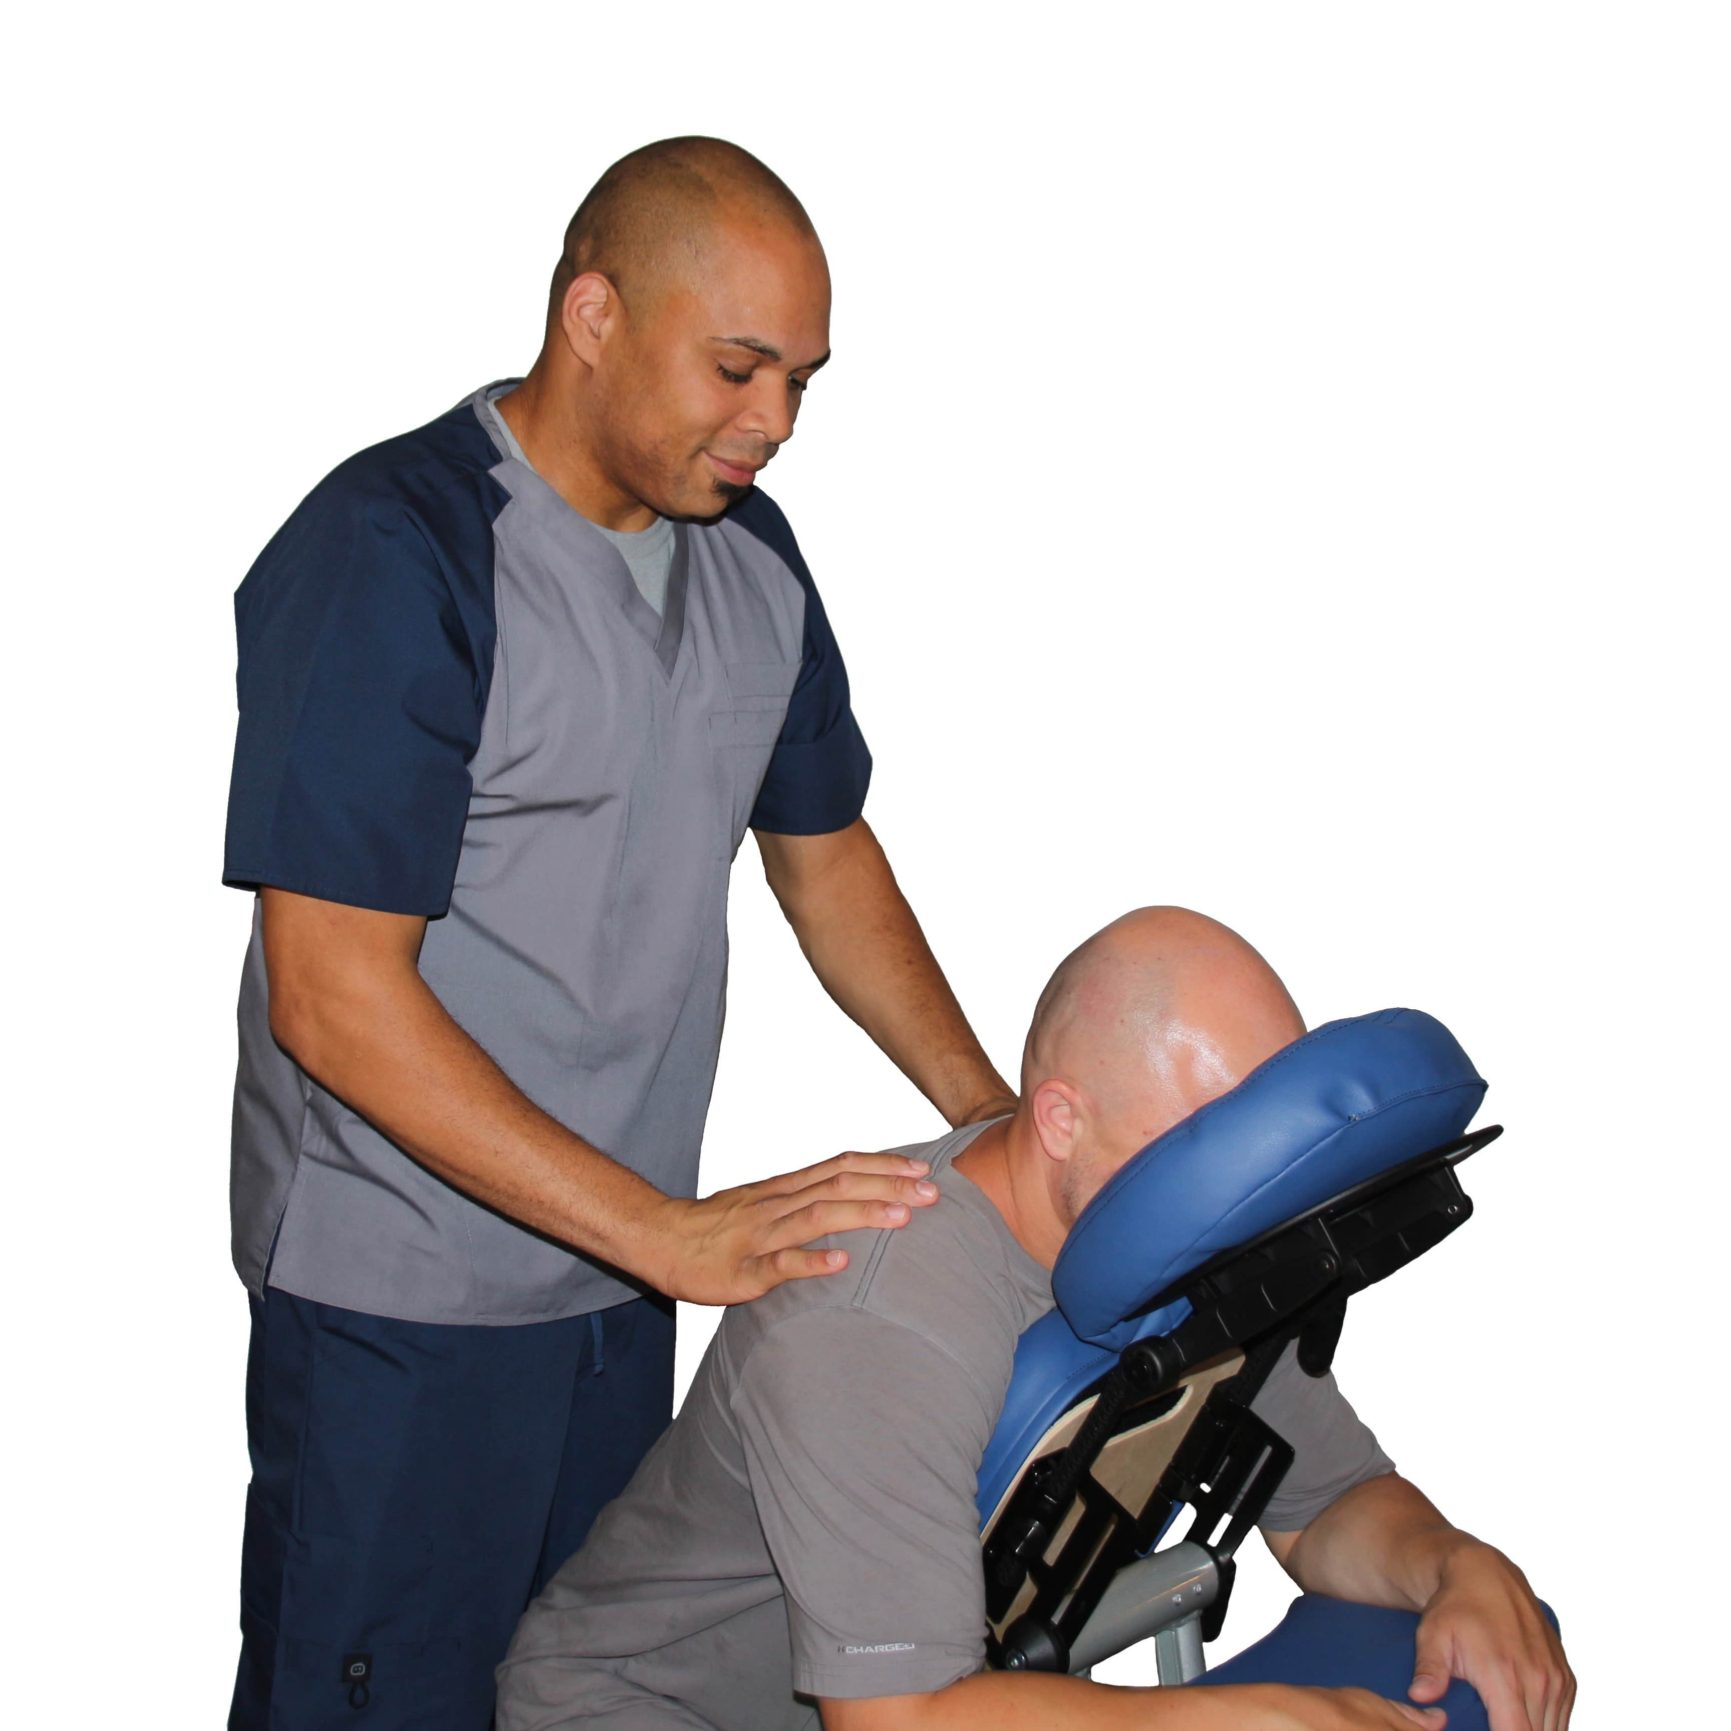 Chair massage therapy - Massage Options From Relaxation To Sports Therapy